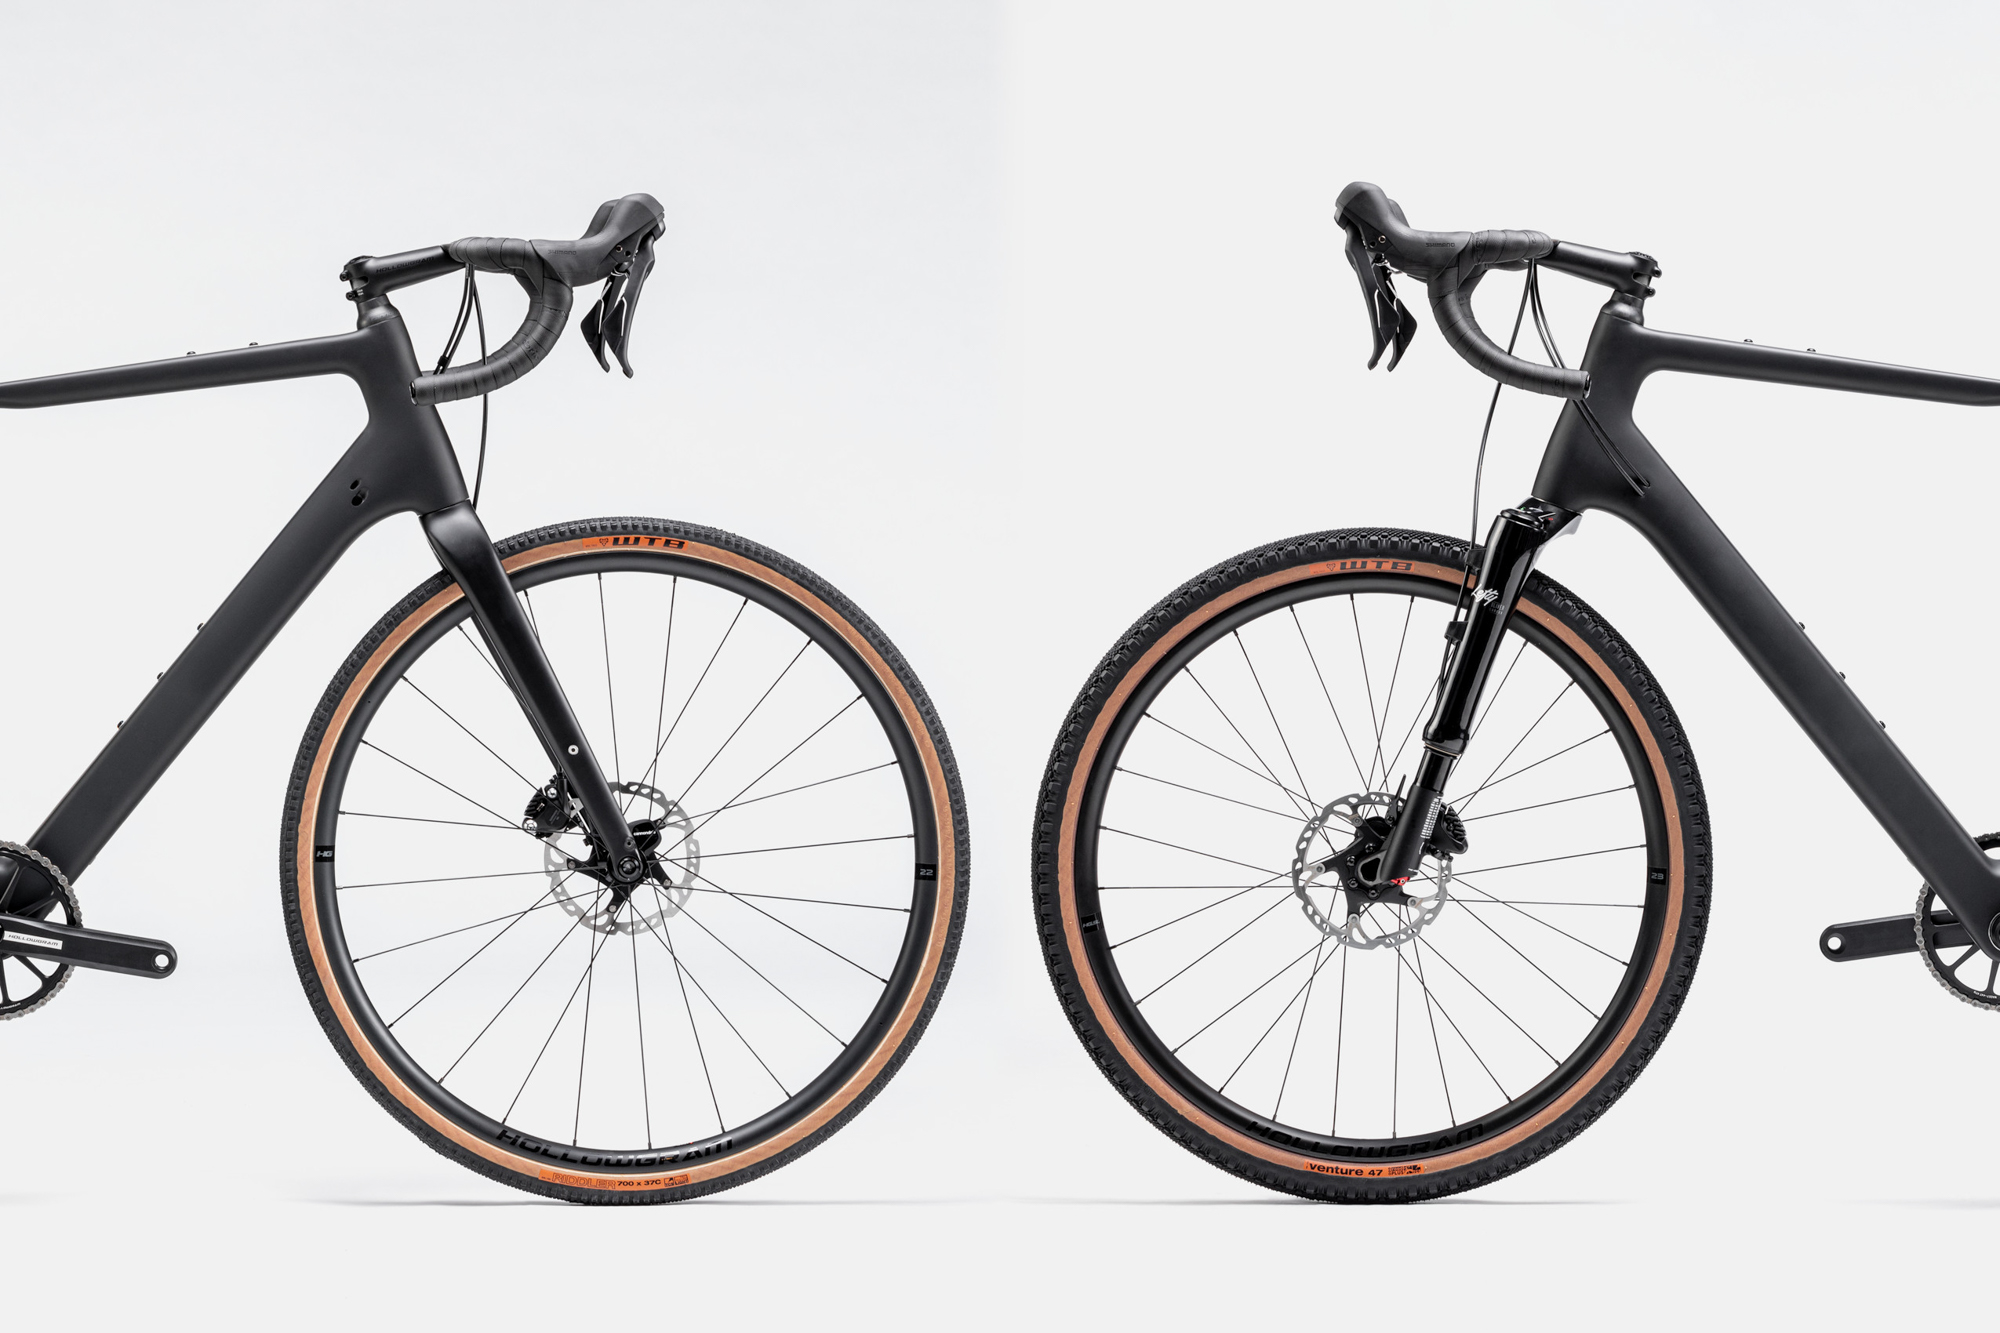 The Topstone frame with the standard carbon suspension fork and 700c wheels alongside the Topstone with the new Lefty Oliver and 650b wheels.